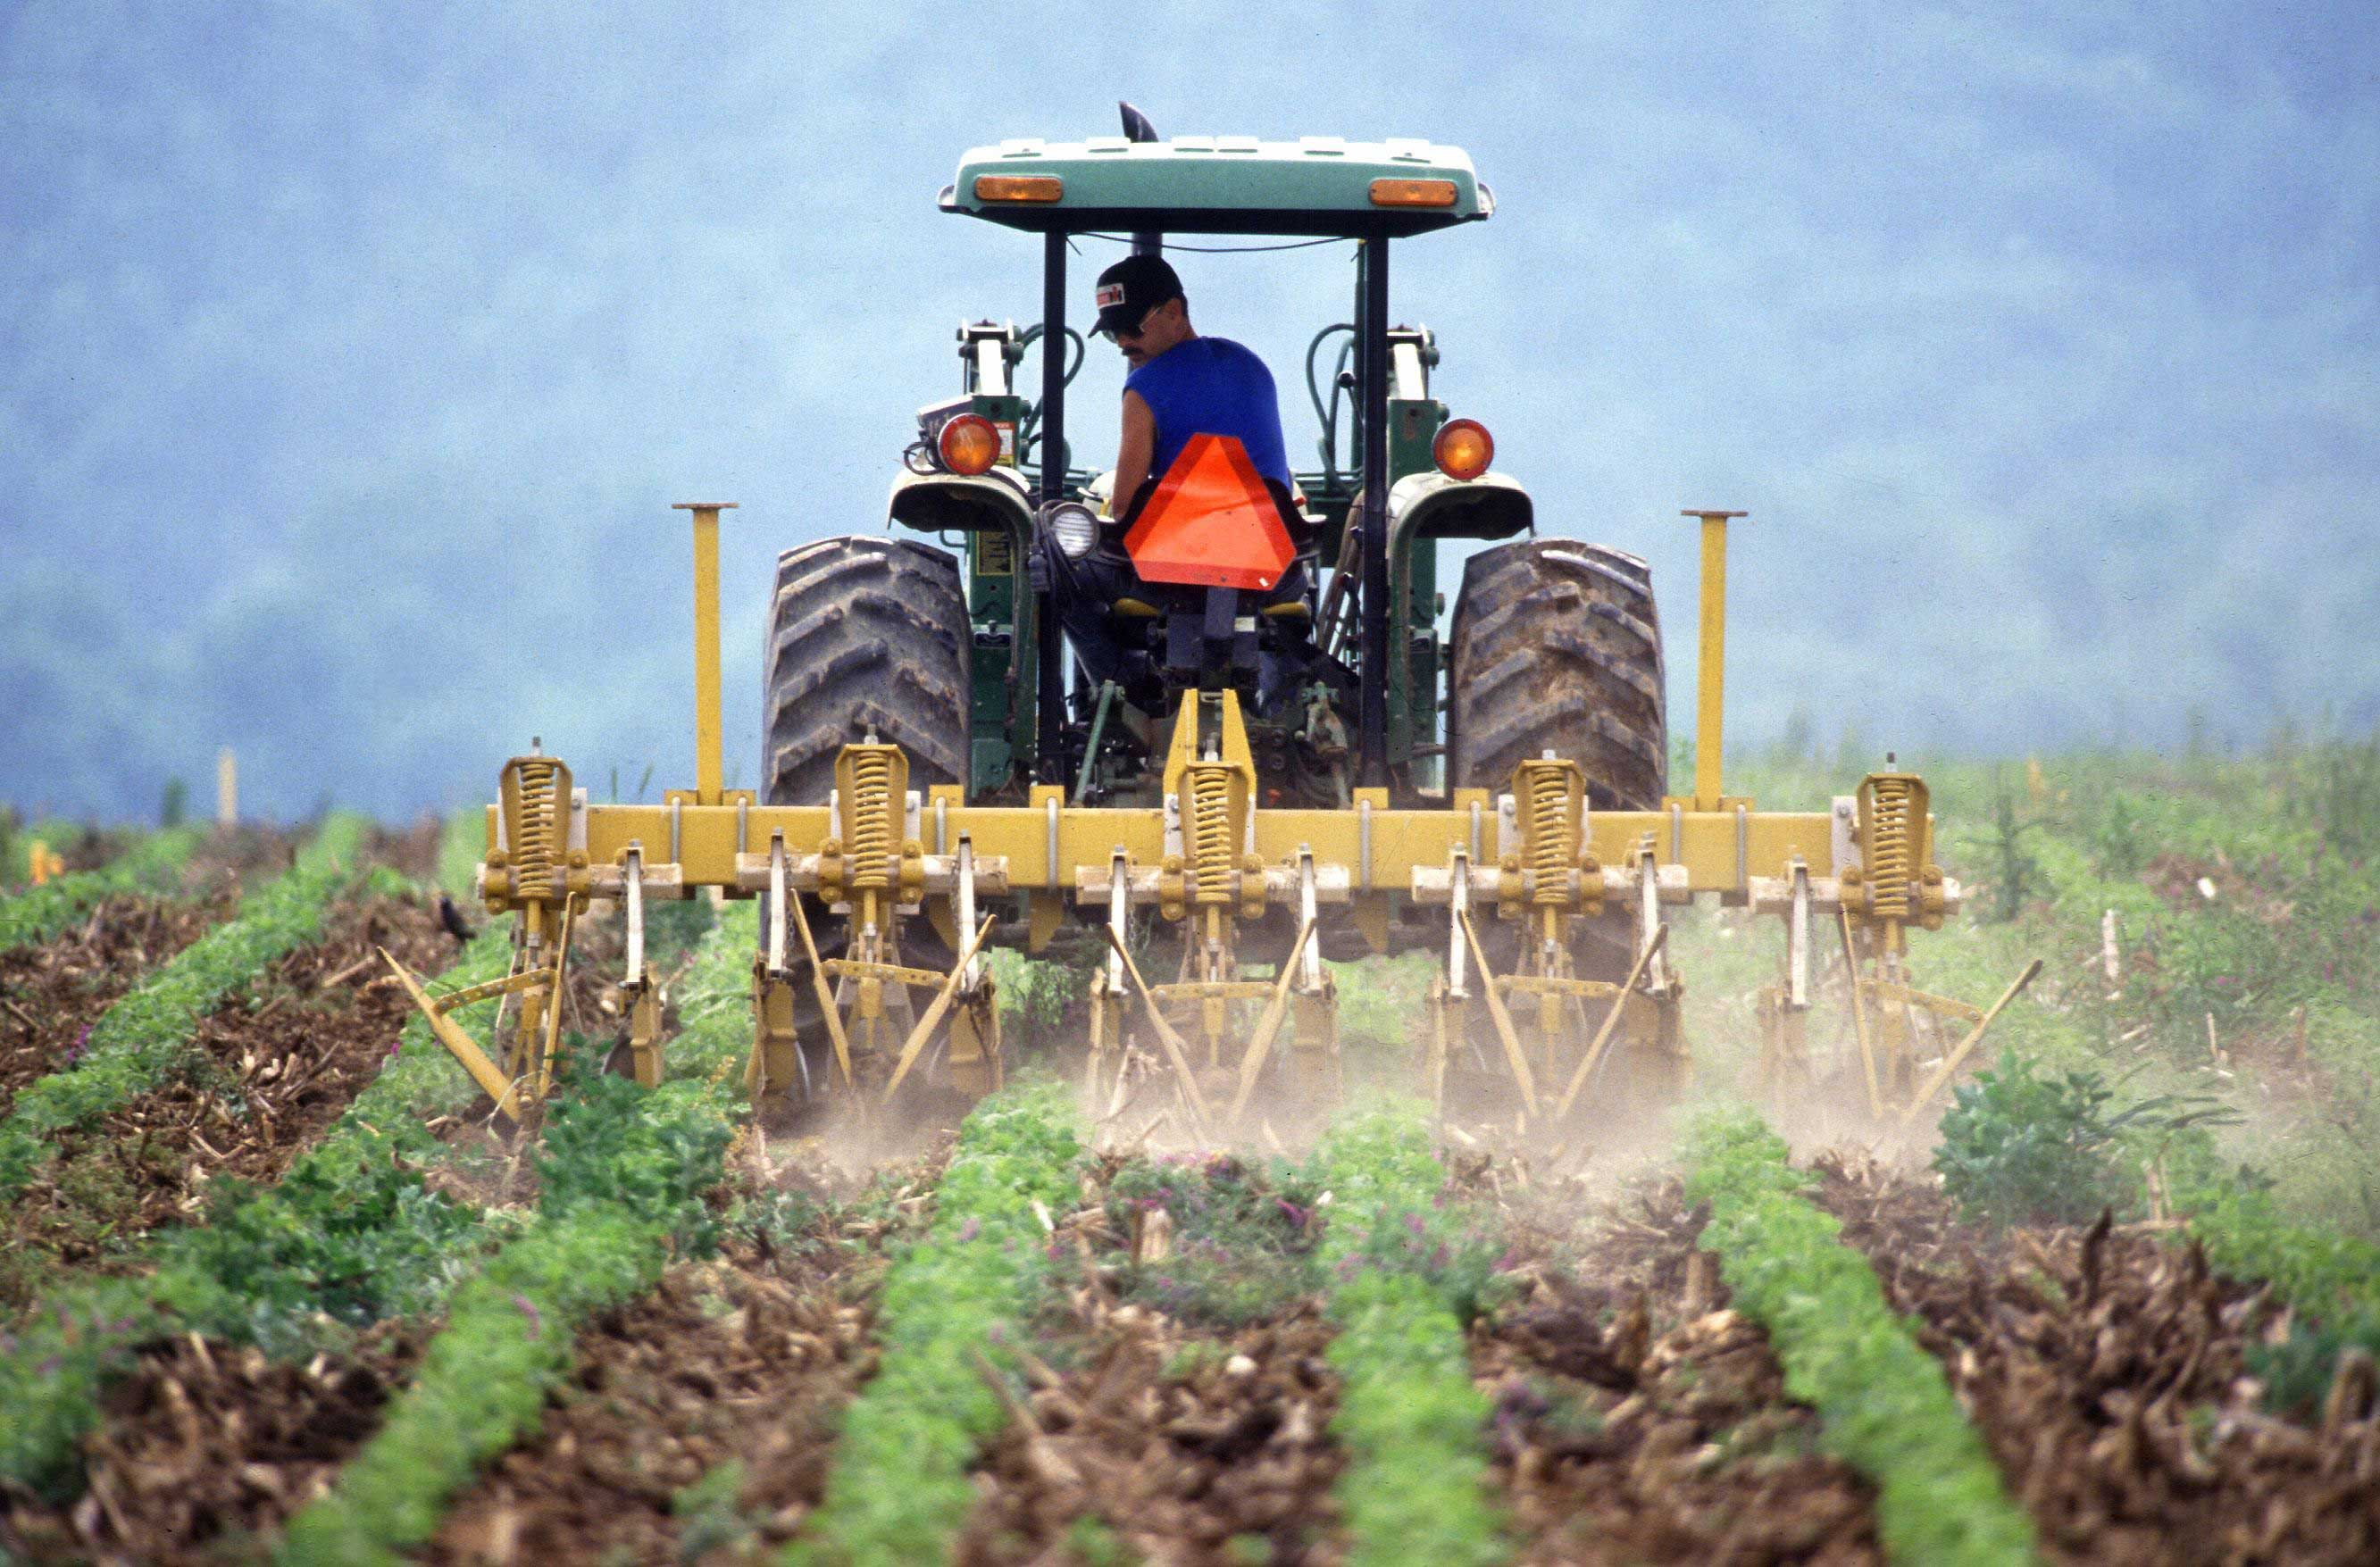 A farmer tilling soil. New research finds that reduced tillage and other land management practices could increase soil's carbon storage enough to offset future carbon emissions. Image credit: Keith Weller, U.S. Department of Agriculture